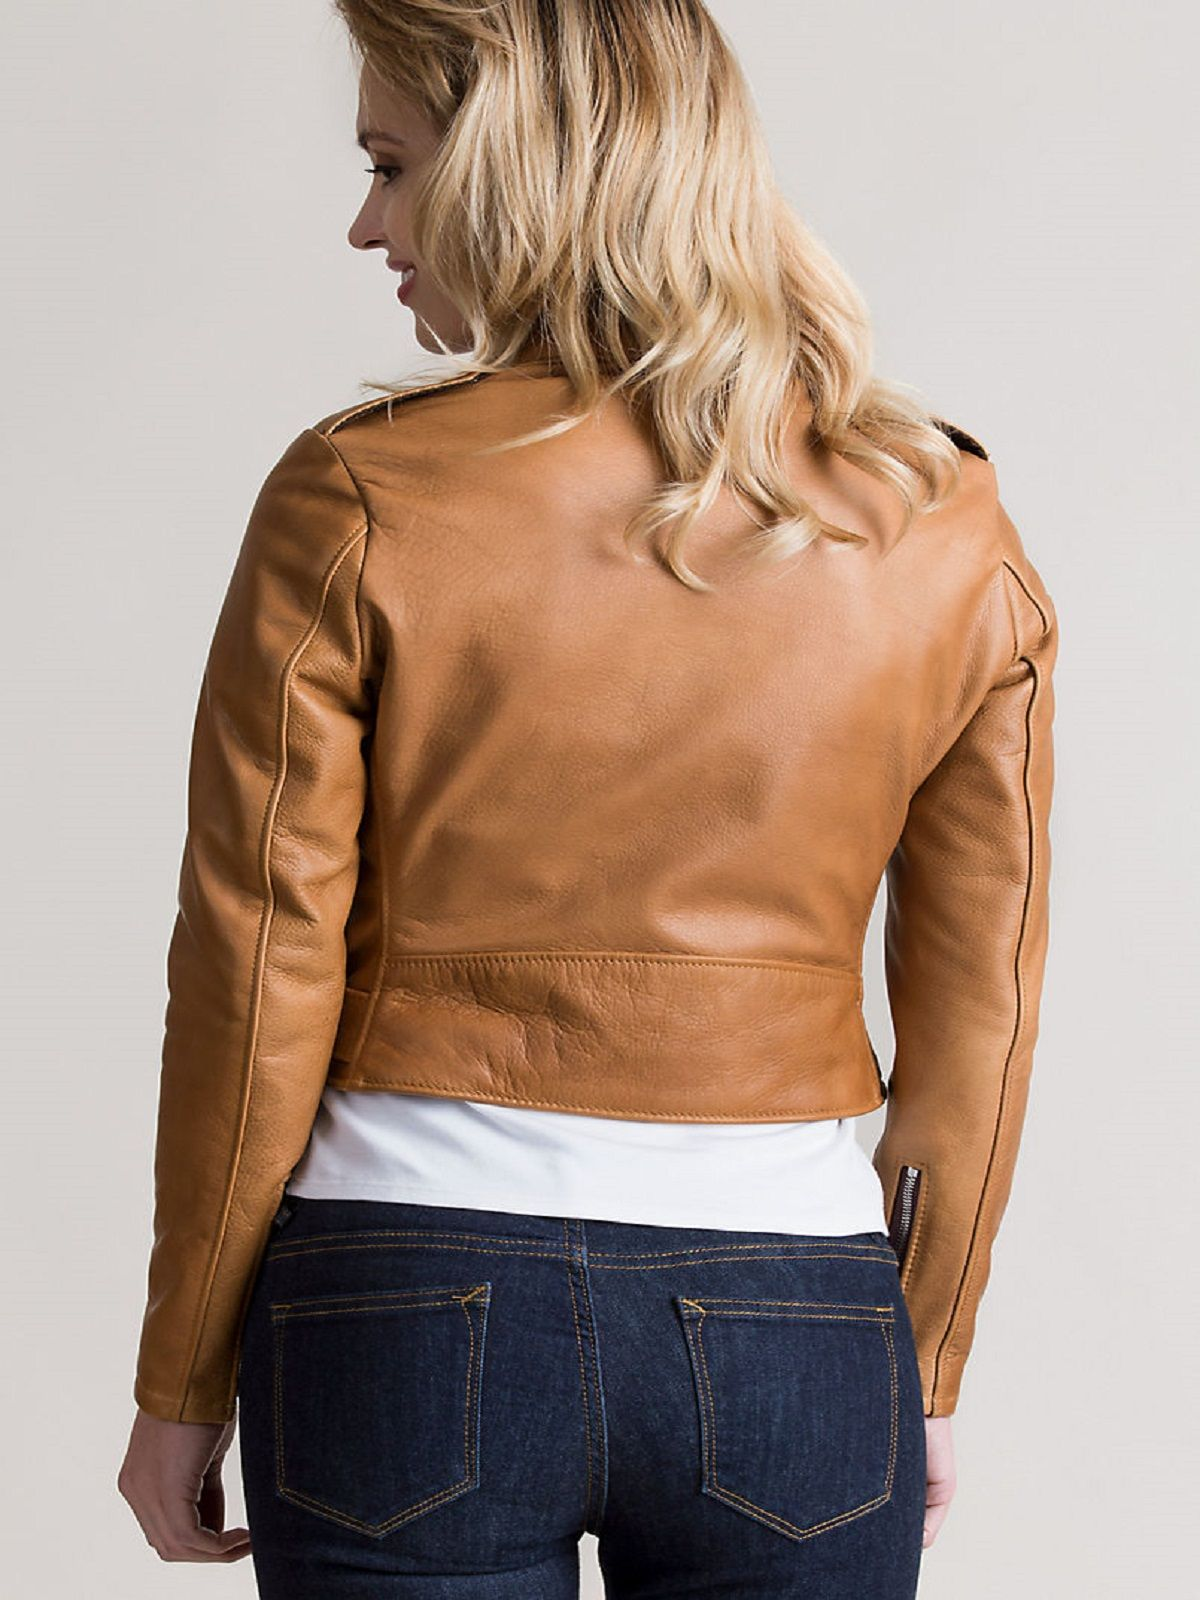 Women's Rust Brown Leather Jacket Leather jacket women